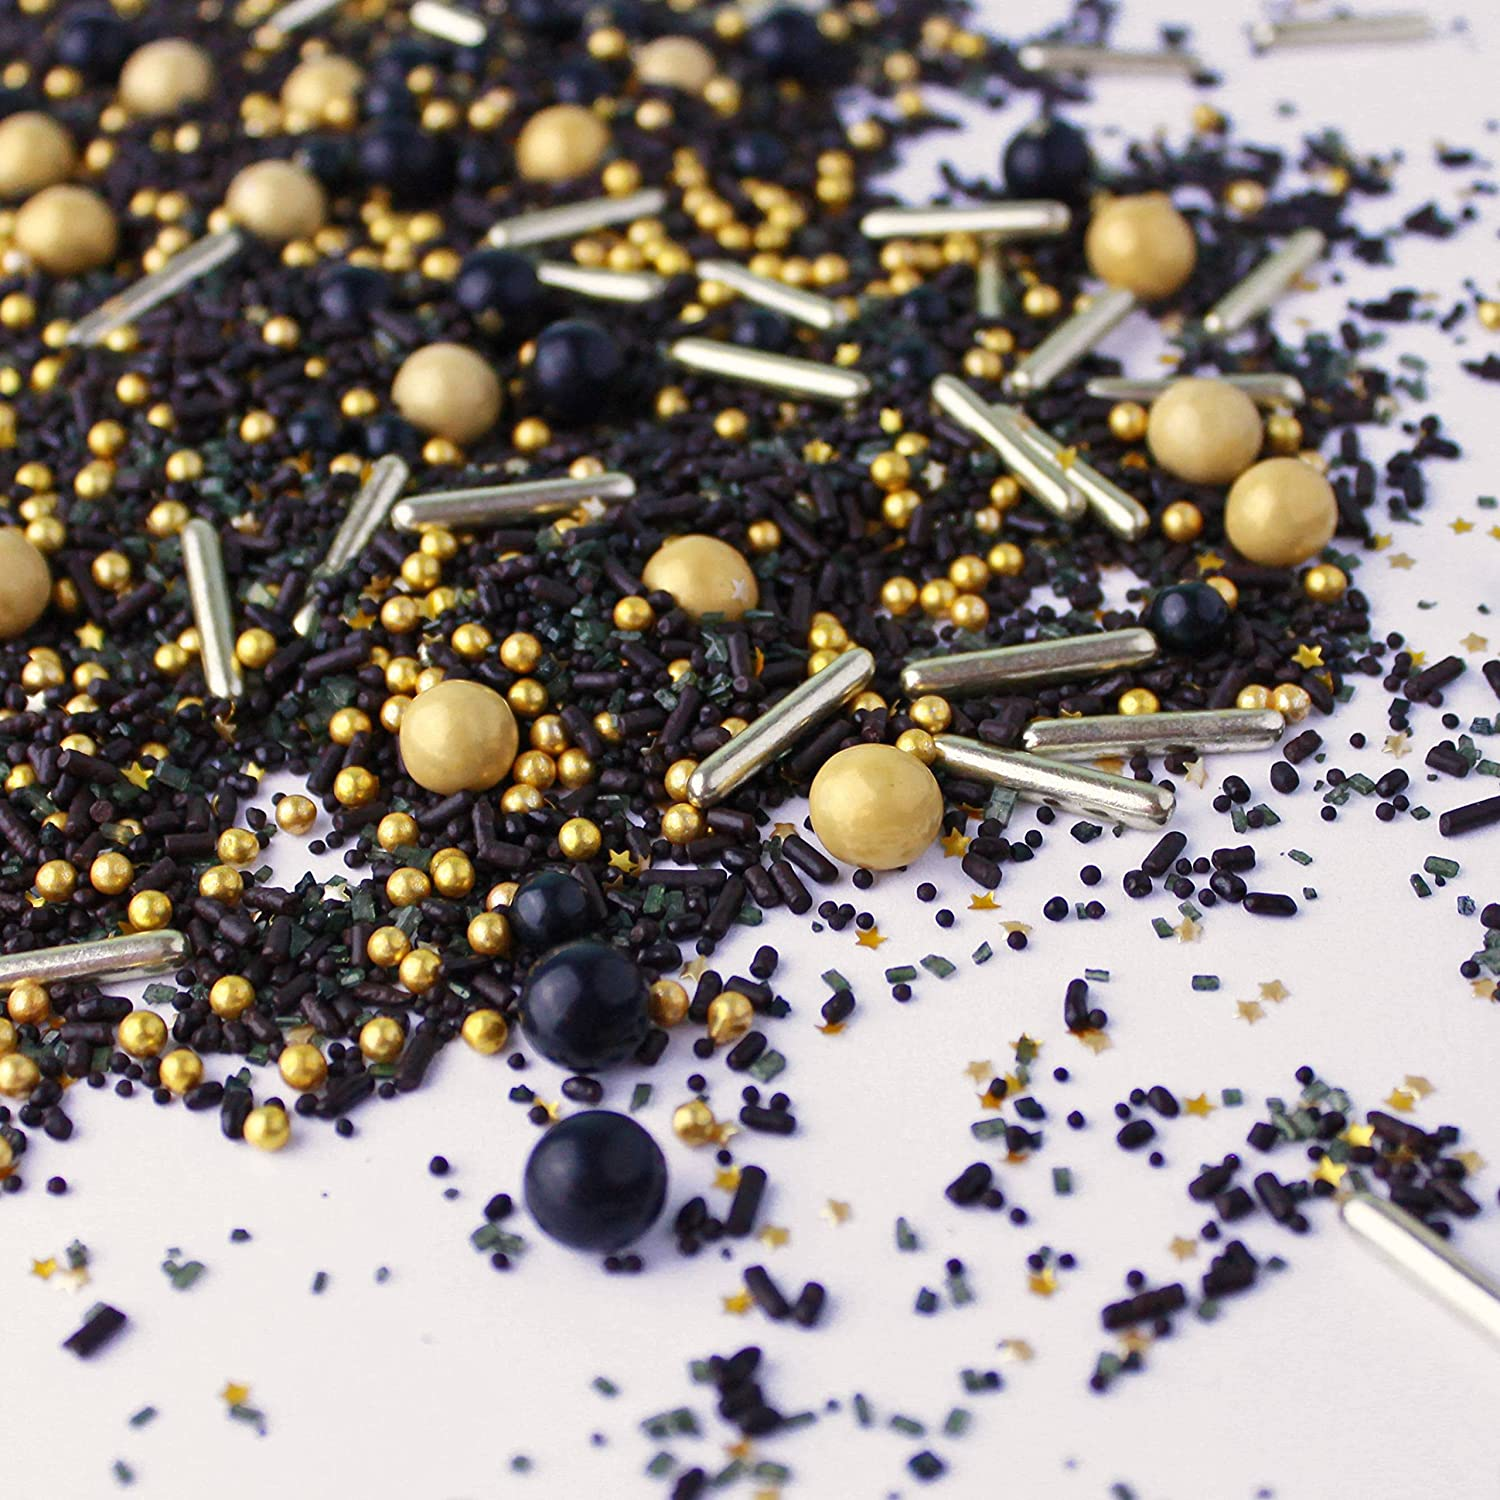 Black Gold Dessert Sprinkles Graduation New Year's Christmas Glam Colorful Candy Sprinkles Mix For Baking Edible Cake Decorations Cupcake Toppers Cookie Decorating Ice Cream Toppings, 2OZ(sample size)